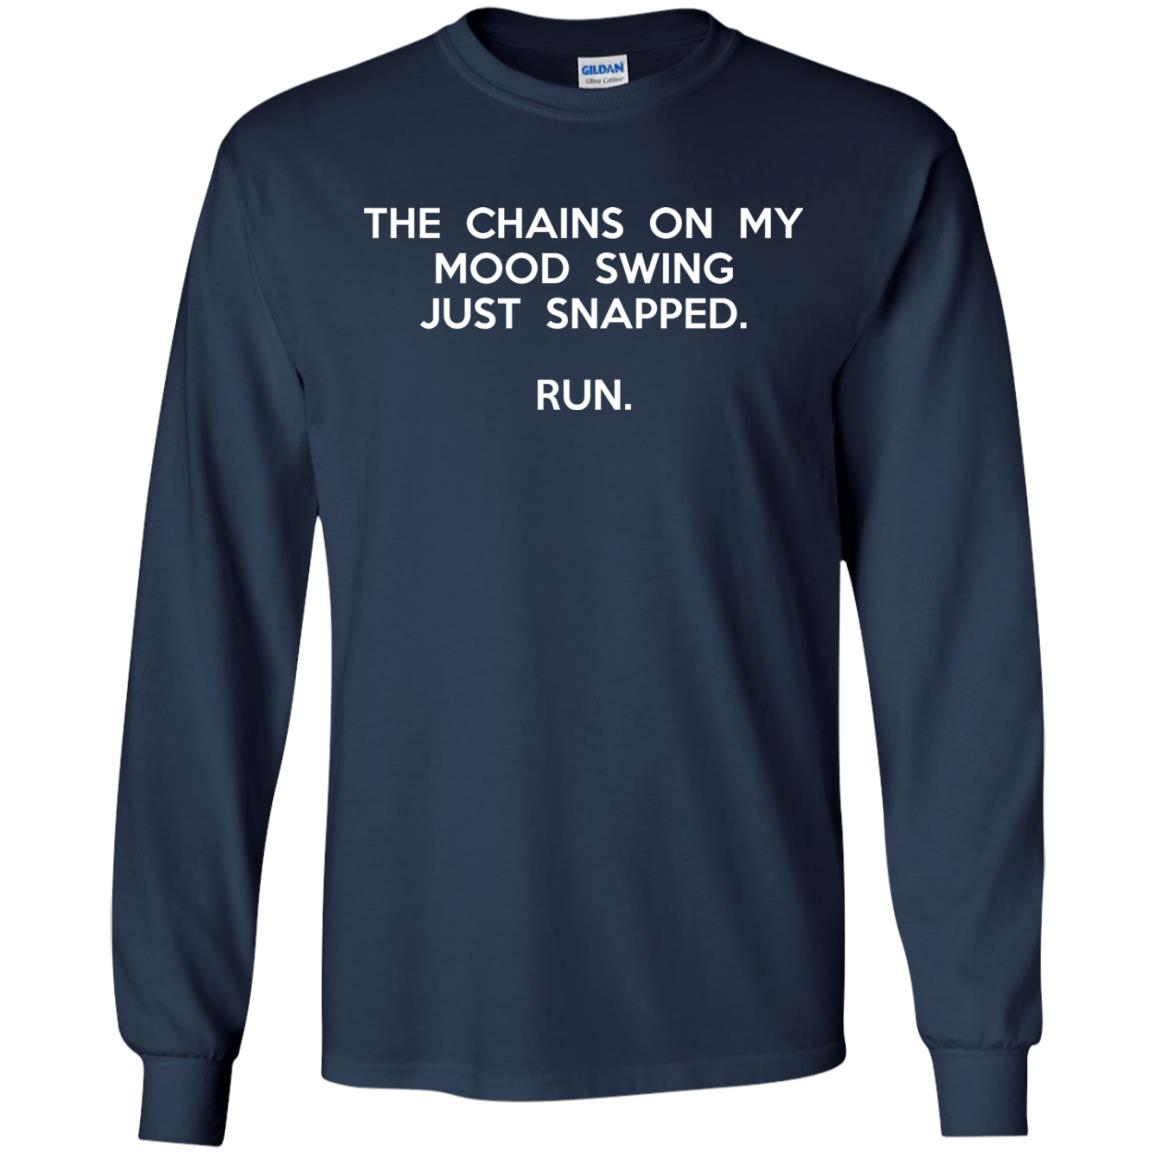 image 2940 - The chains on my mood swing just snapped shirt